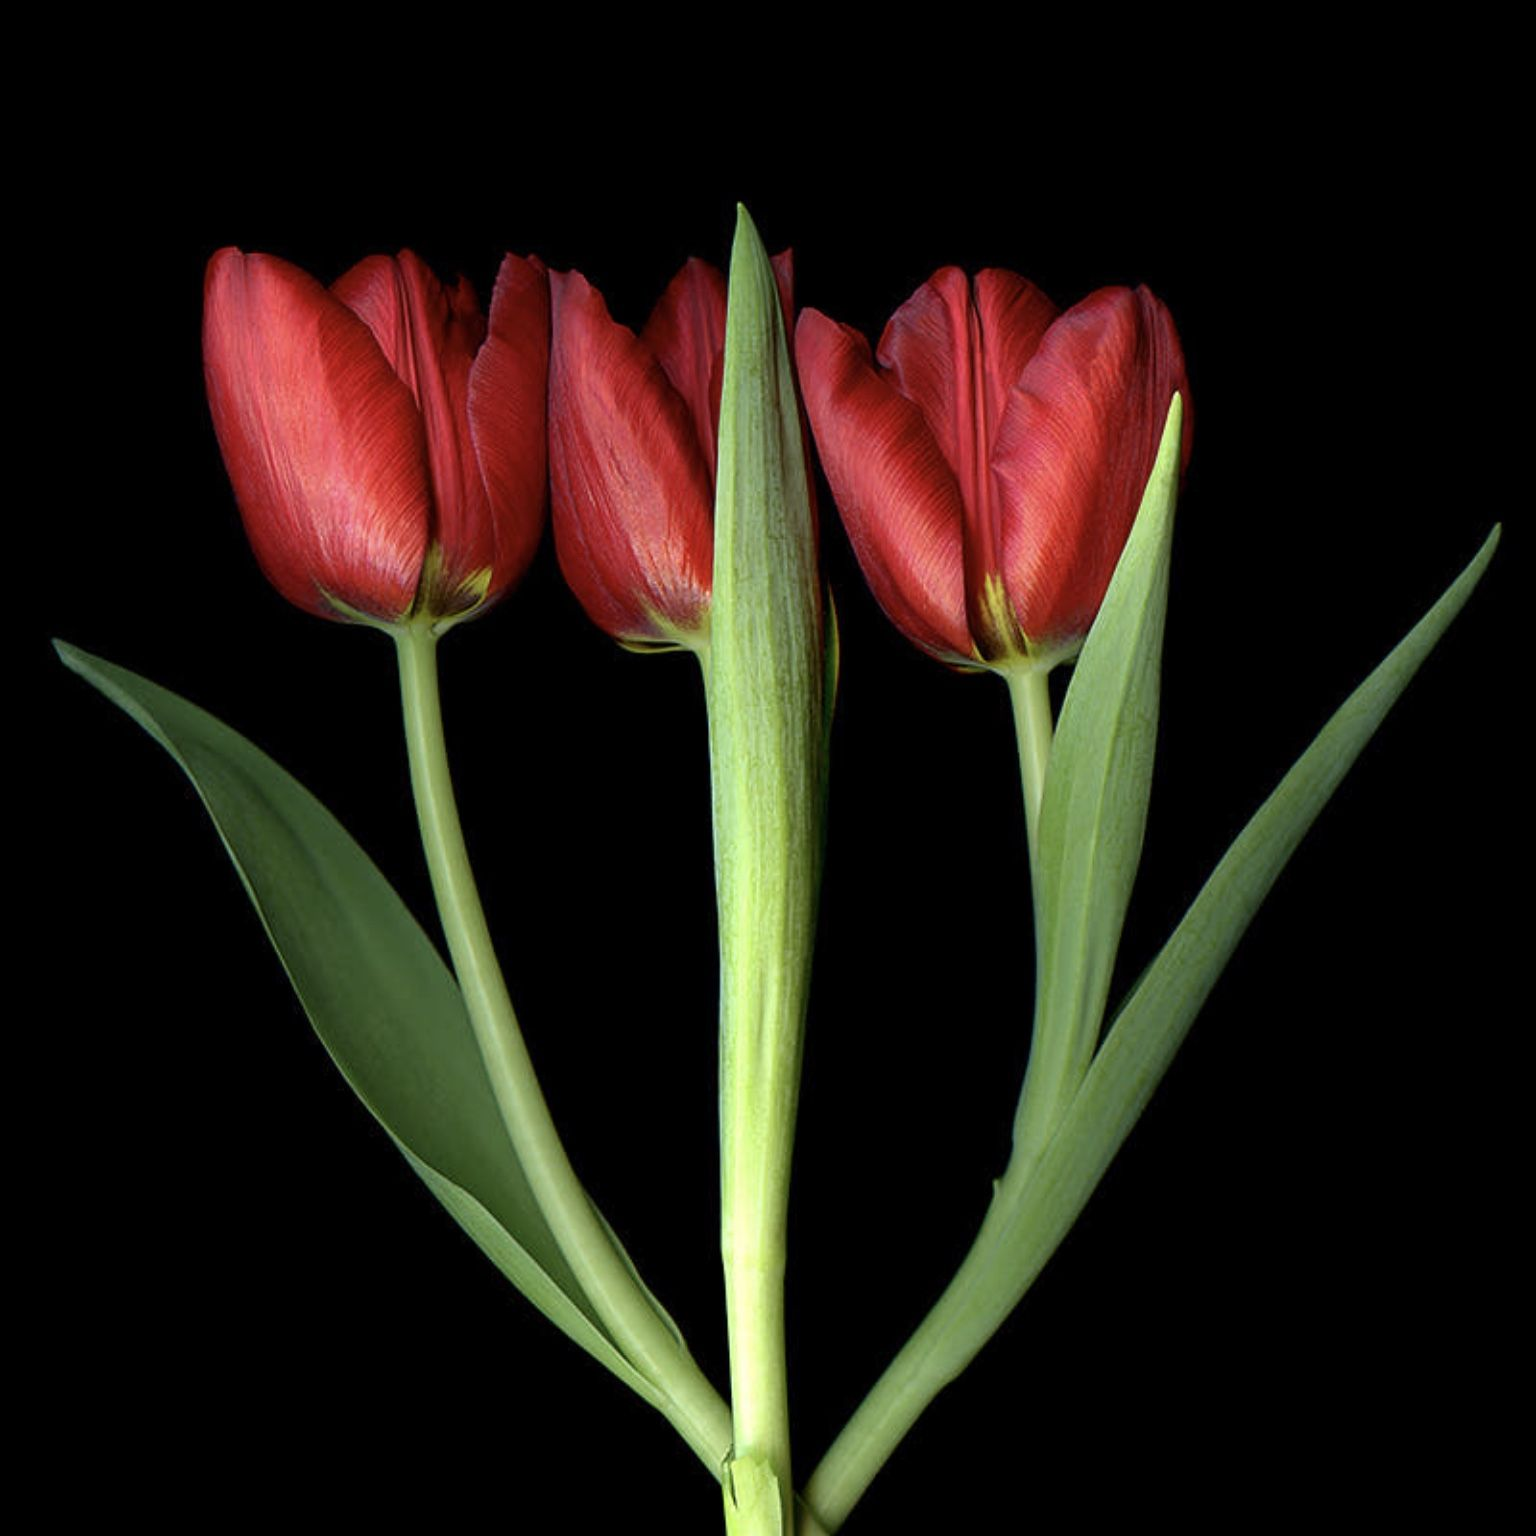 Pin By Linda Pace On Flowers Red Tulips Tulips Flowers Tulips